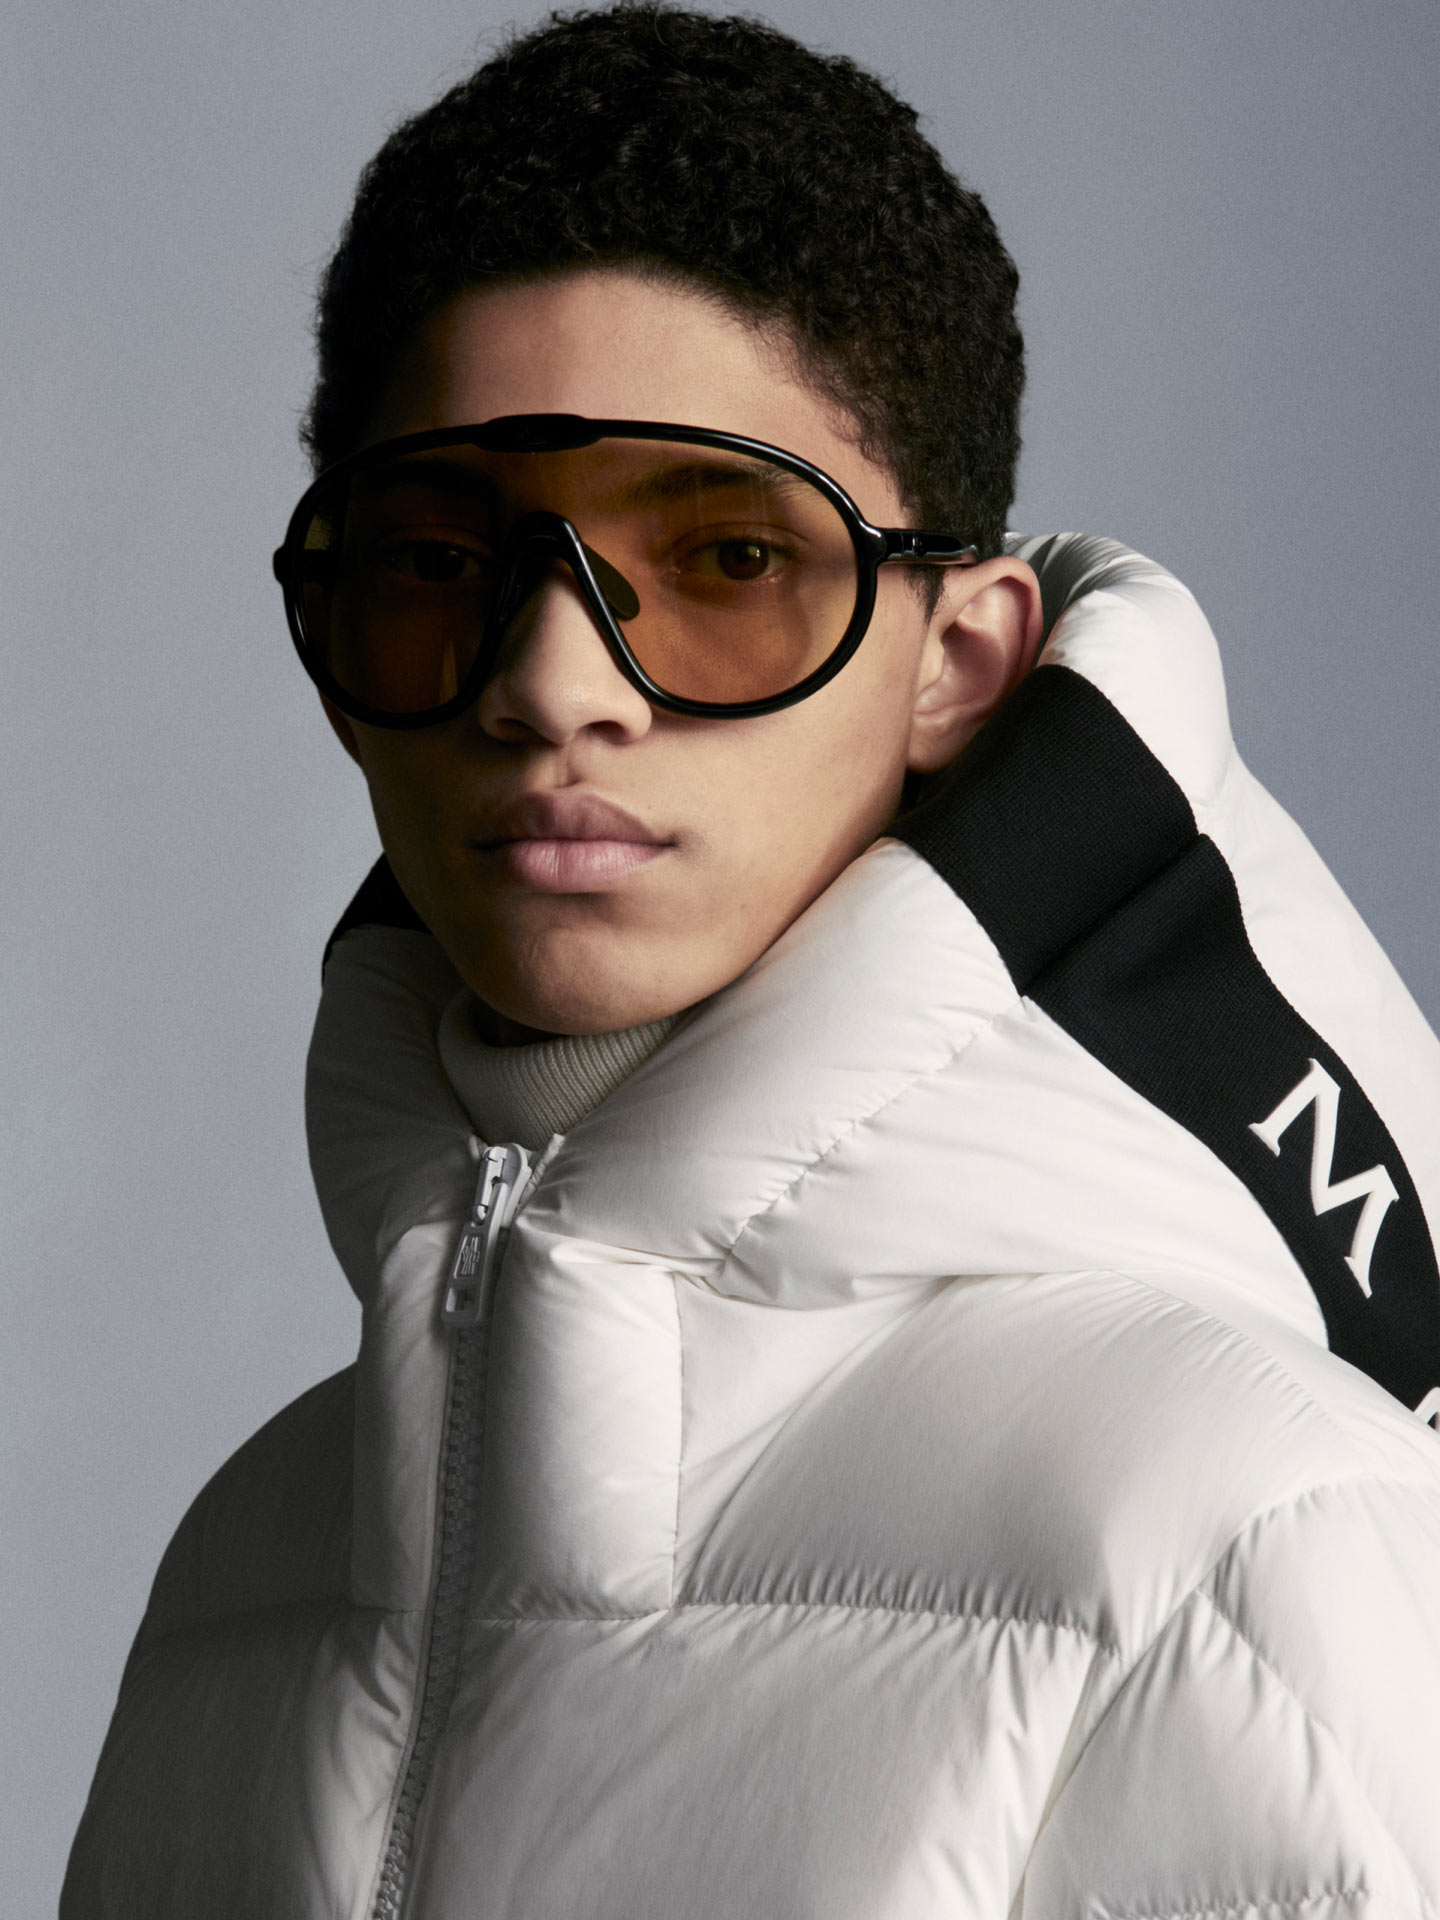 A man wearing a white Moncler down jacket and brown sunglasses